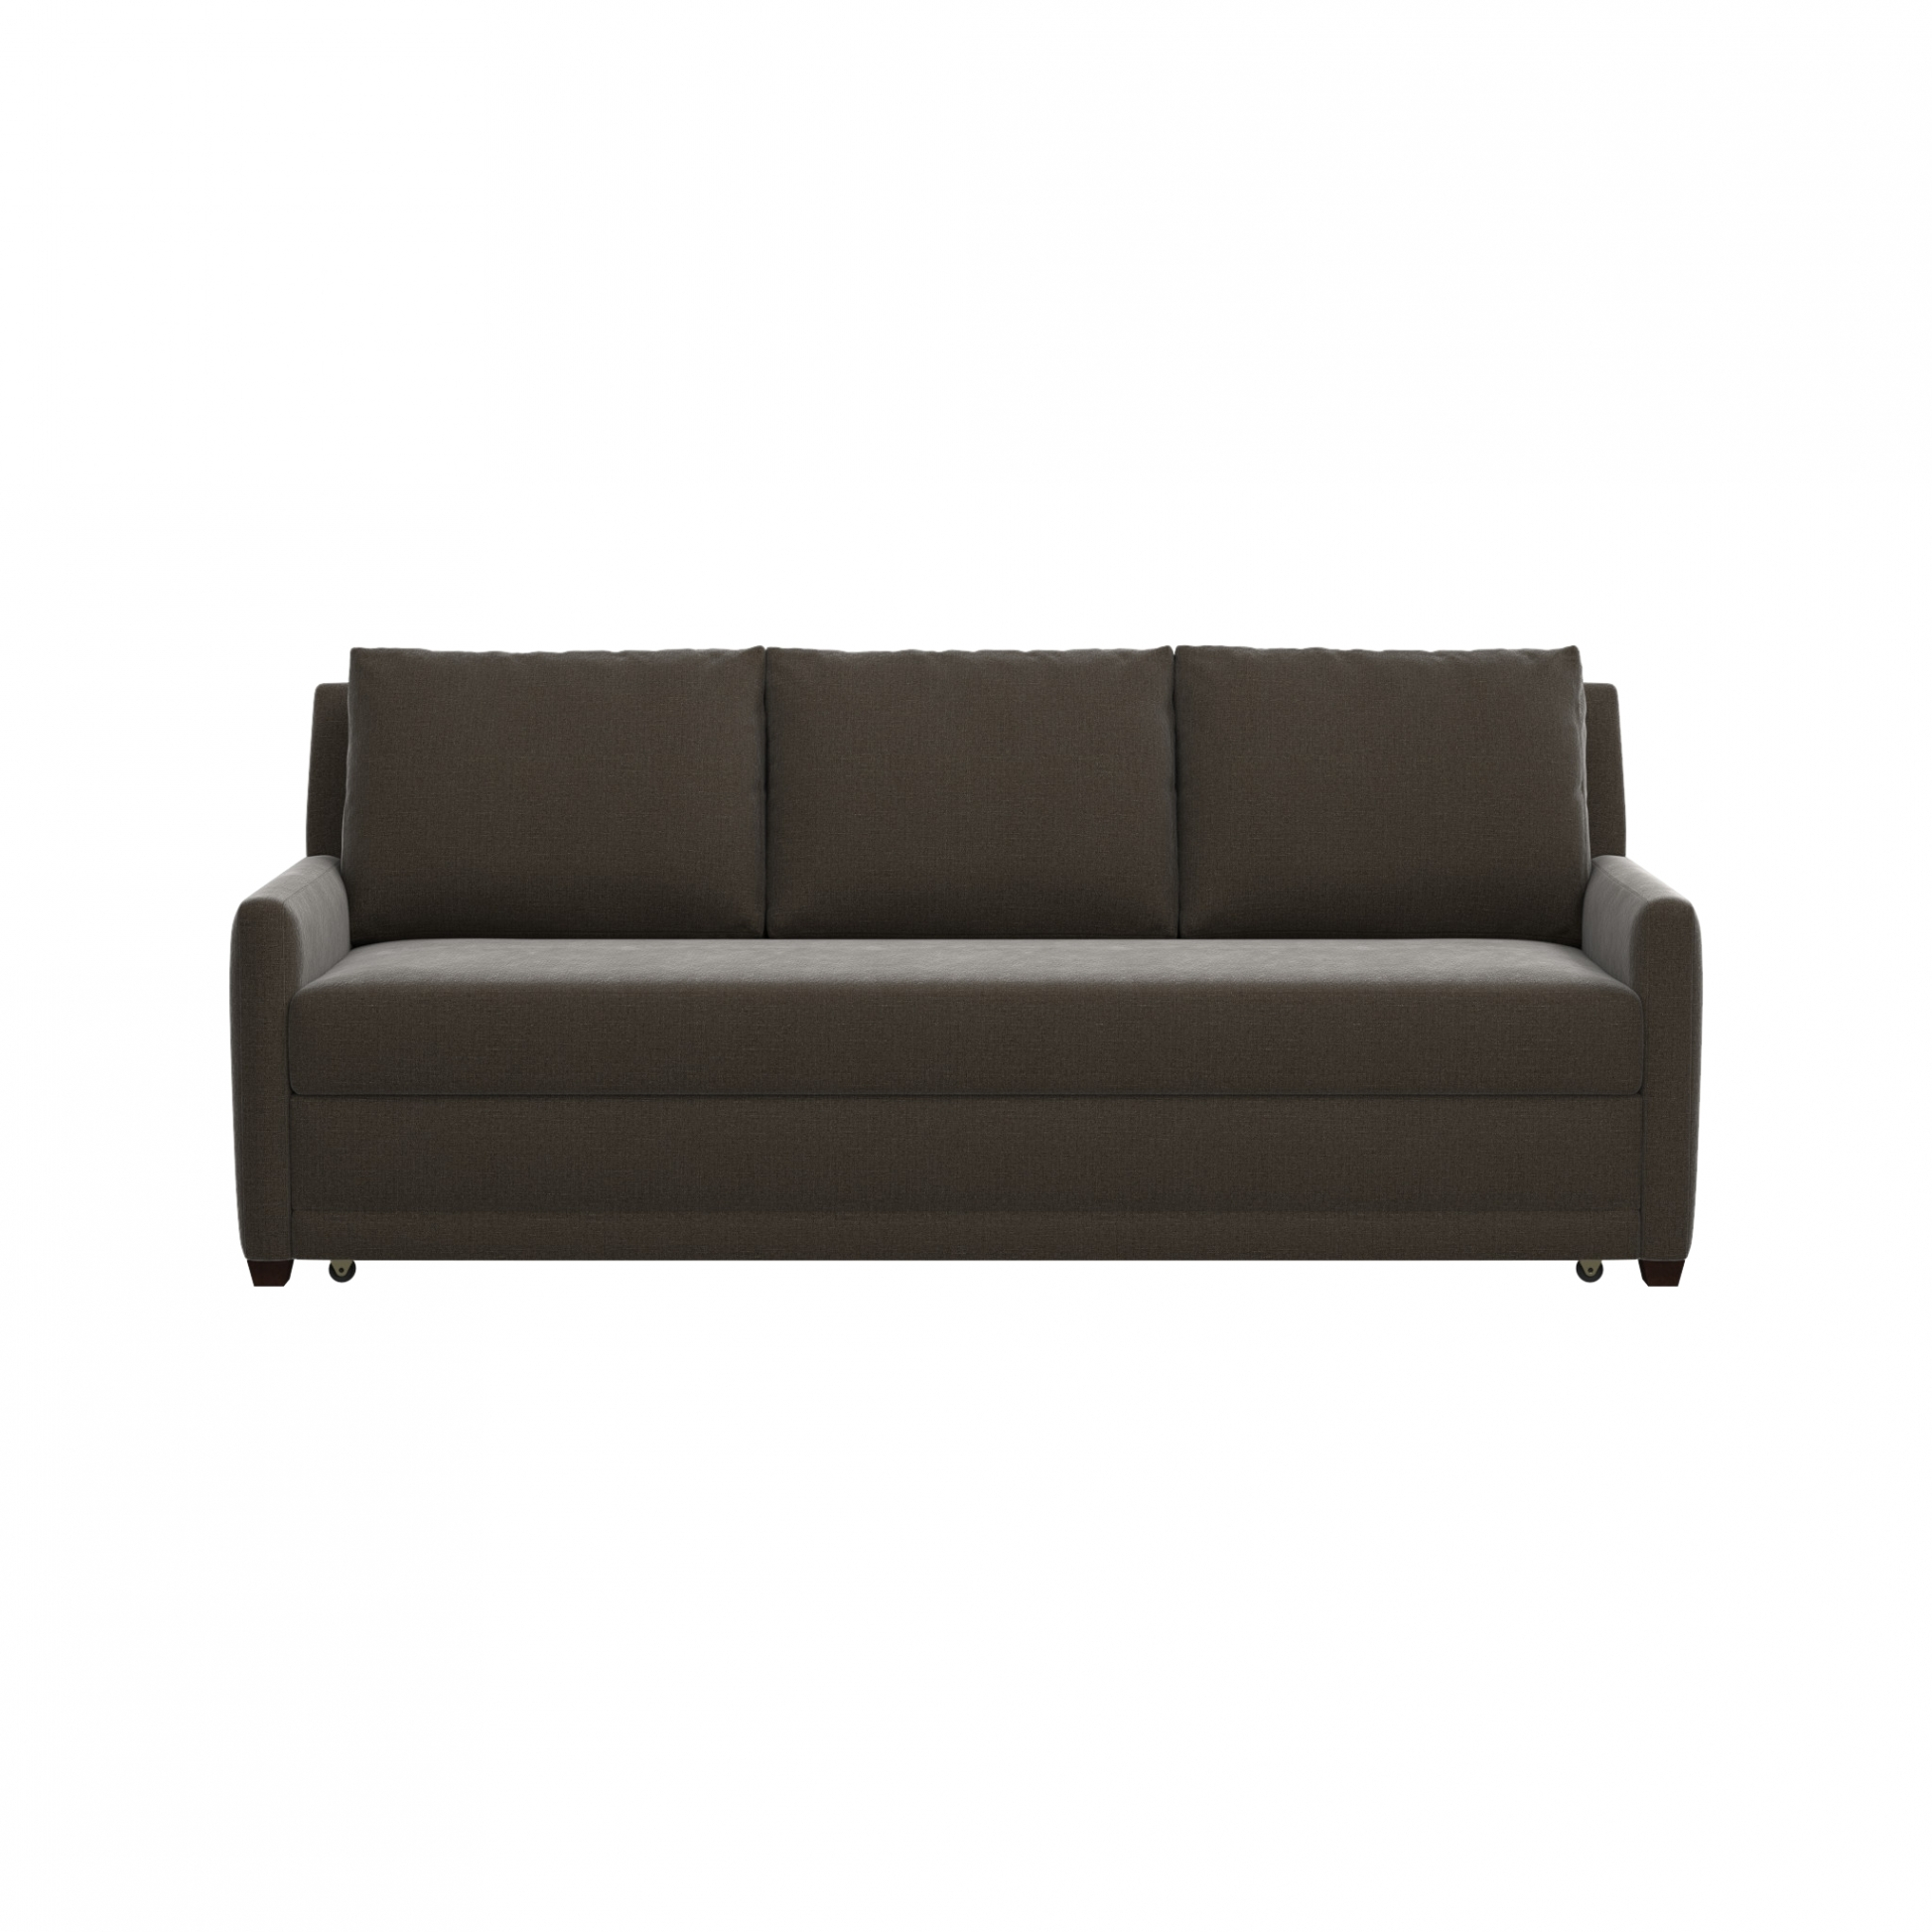 Awesome Crate And Barrel Sleeper Sofa Design With Regard To Crate And Barrel Sleeper Sofas (Image 4 of 20)